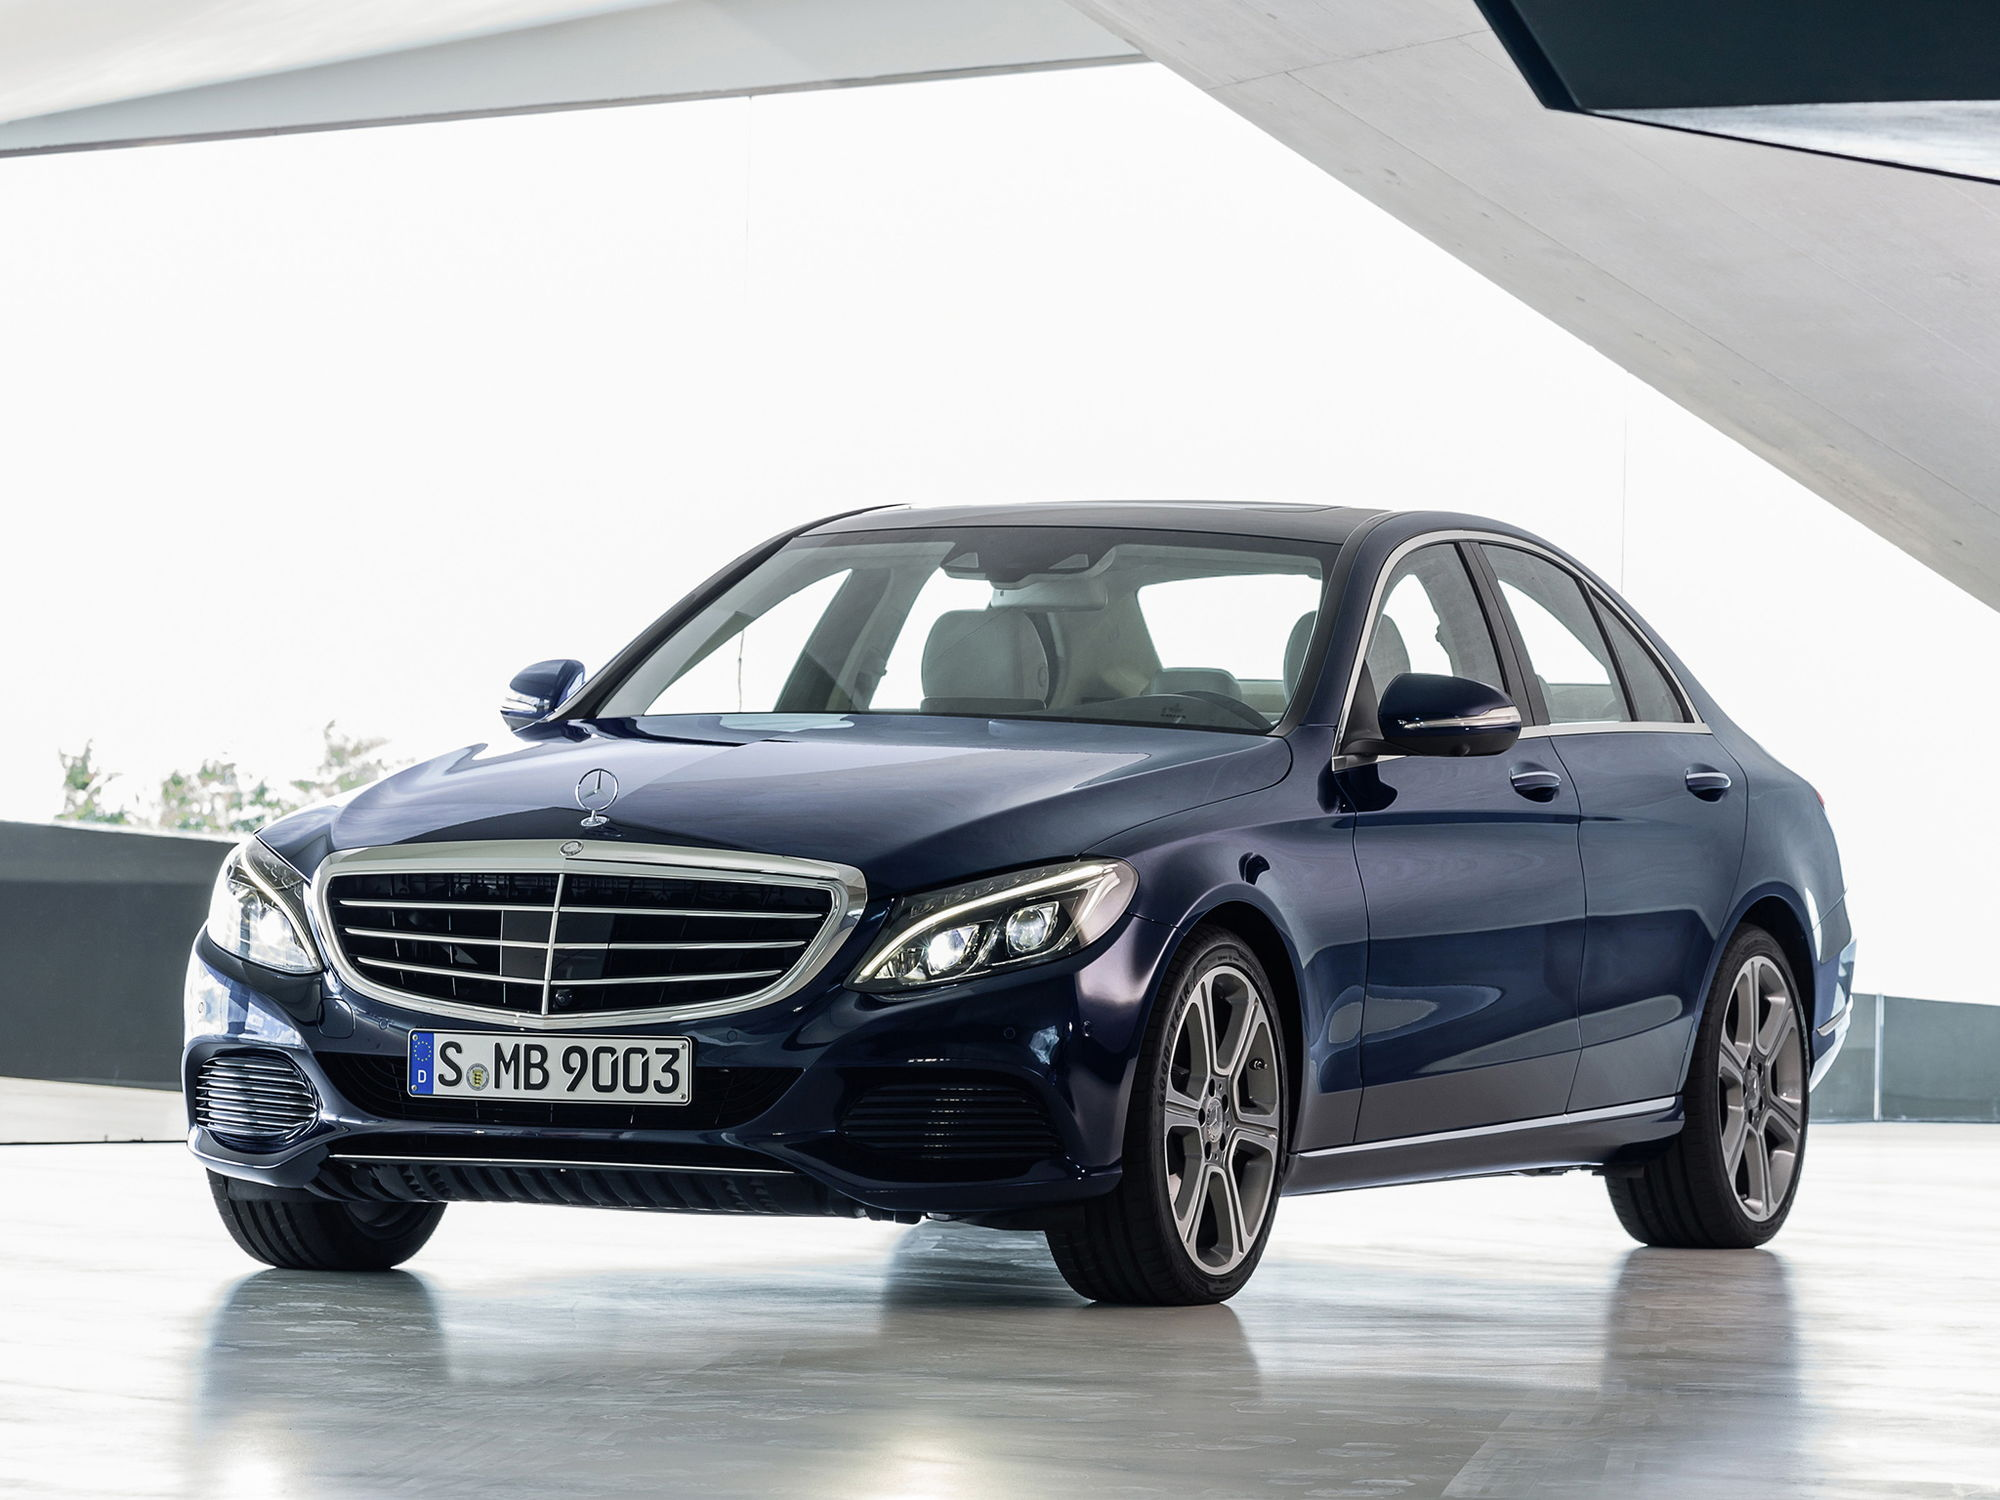 Why no love for the c300 luxury trim page 2 mbworld for 2017 mercedes benz c300w